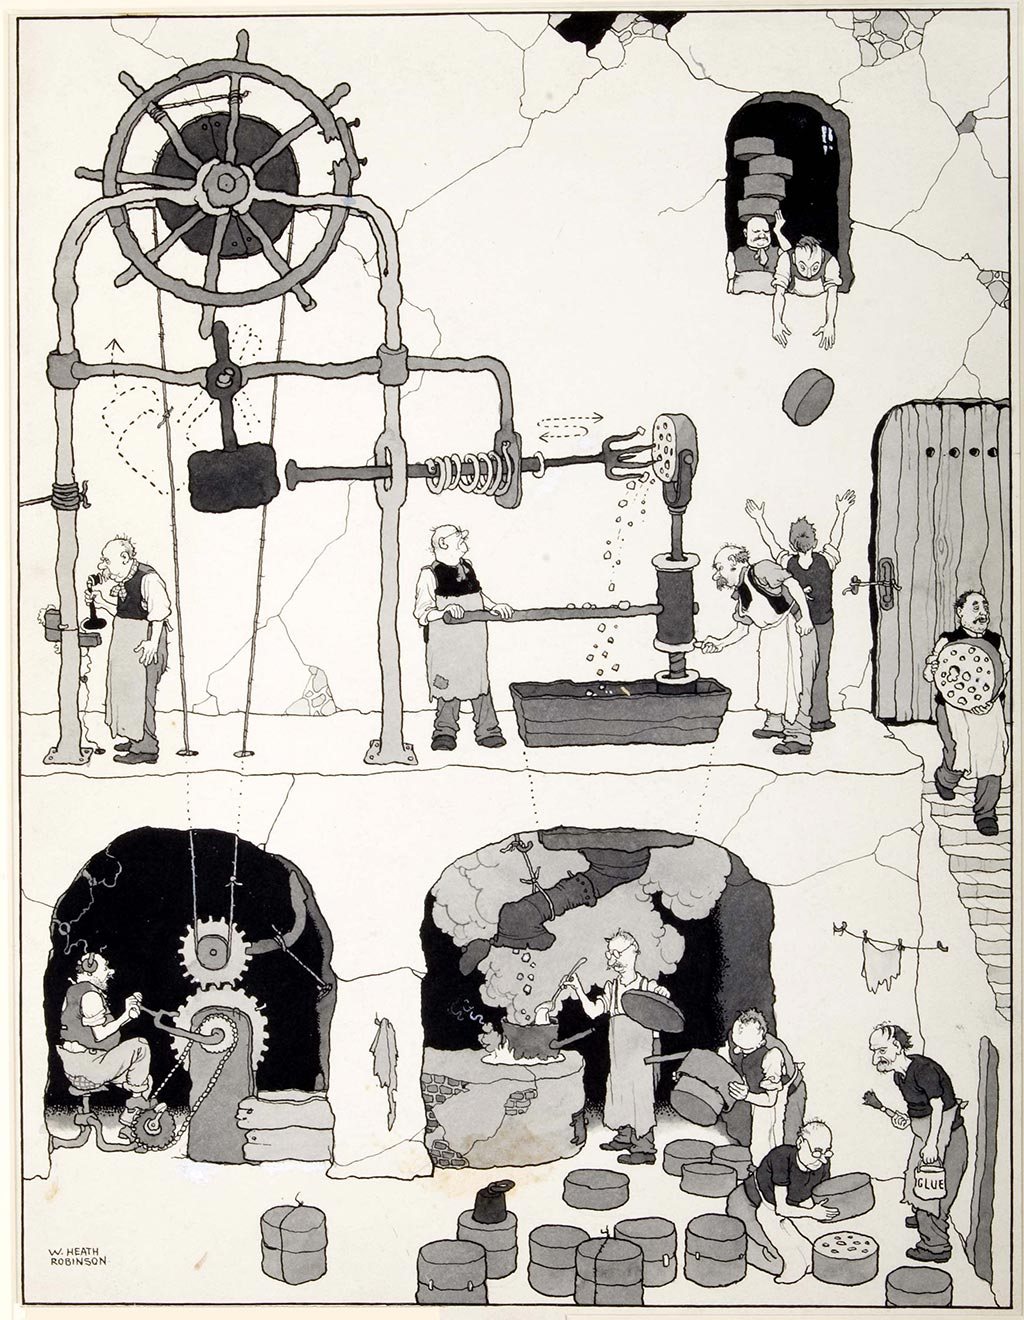 william_heath_robinson_inventions_